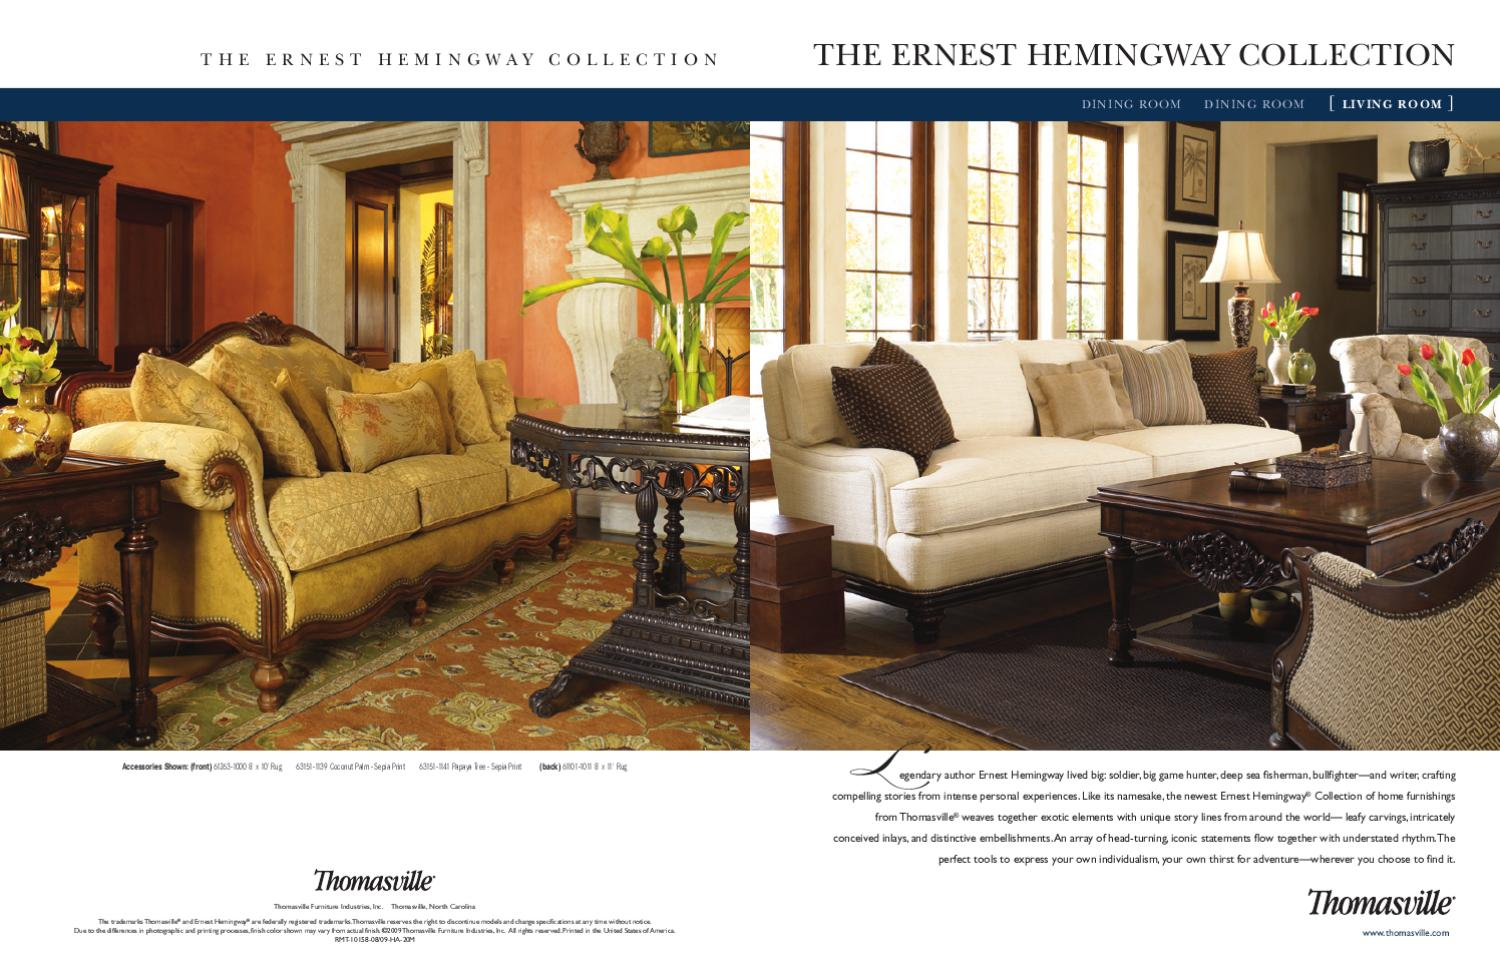 Exceptional Thomasville  The Ernest Hemingway Collection ( Living Room) By Cadieux U0026  Company   Issuu